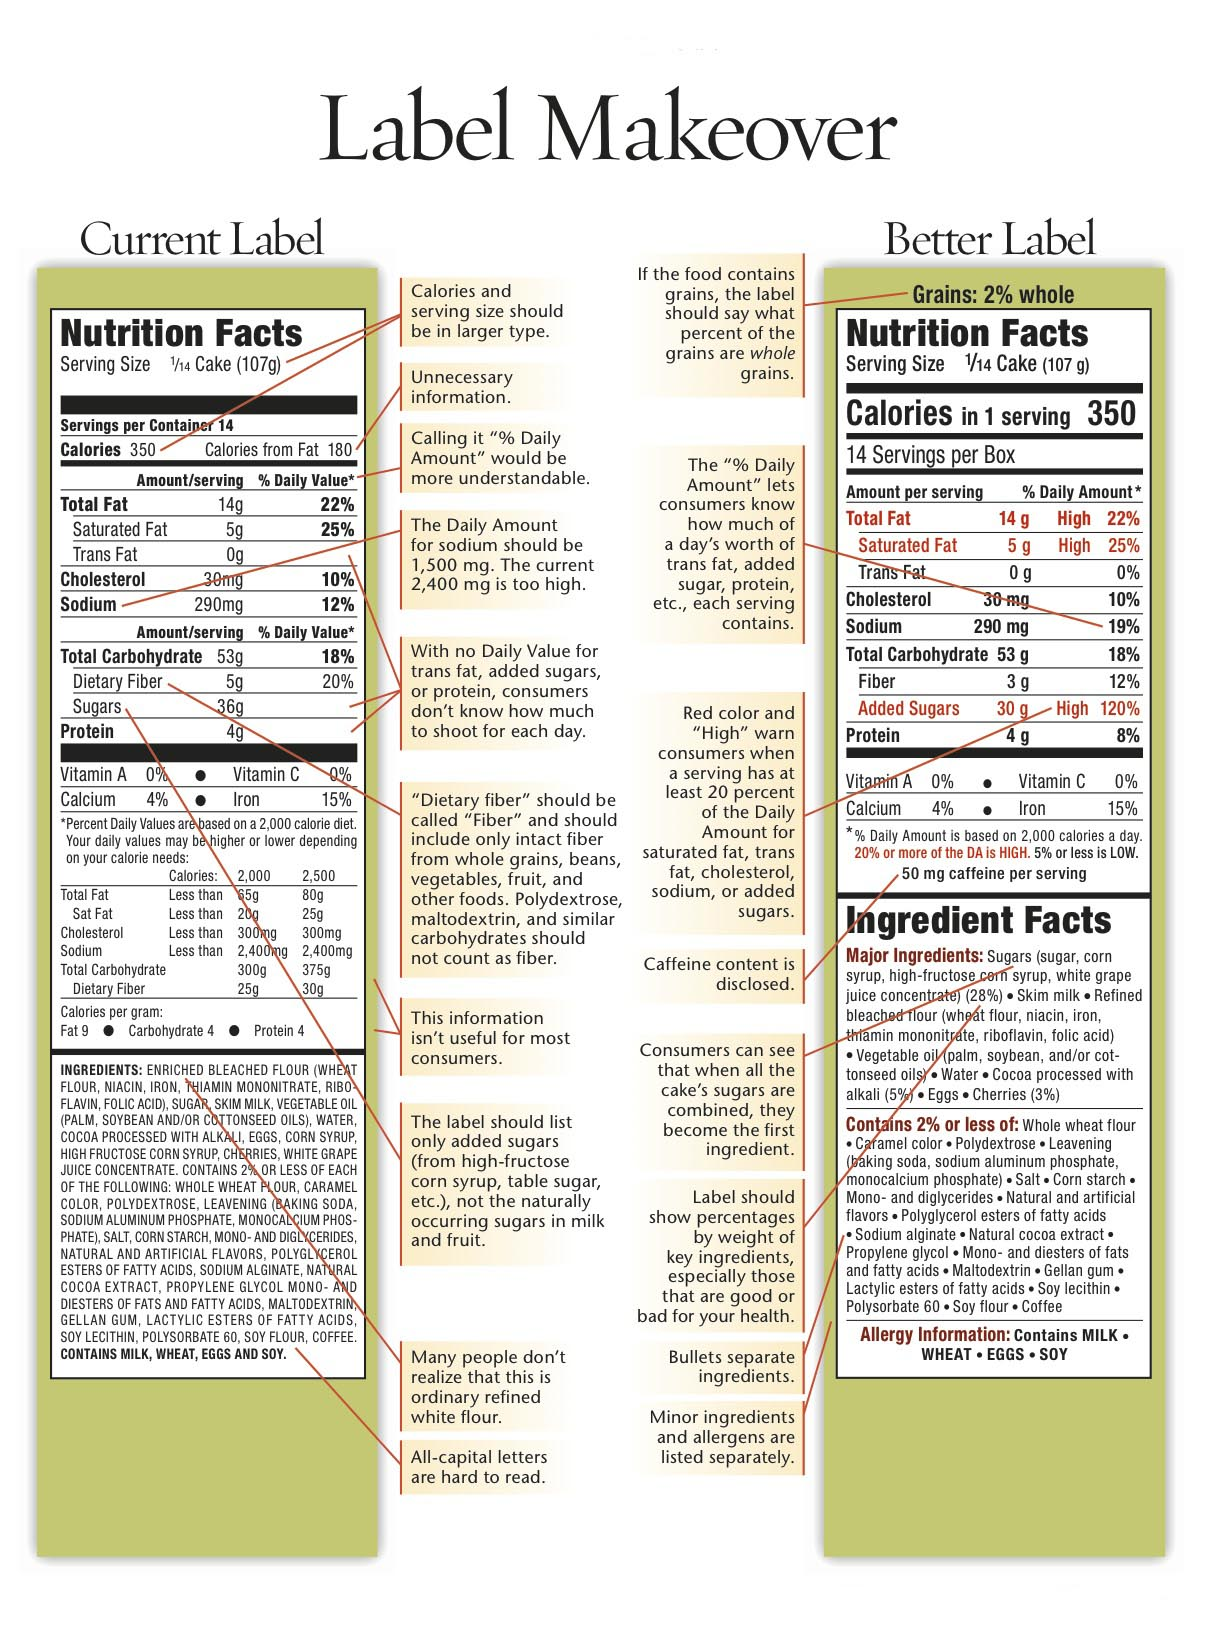 Do You Think Nutrition Labels On Food Are Confusing